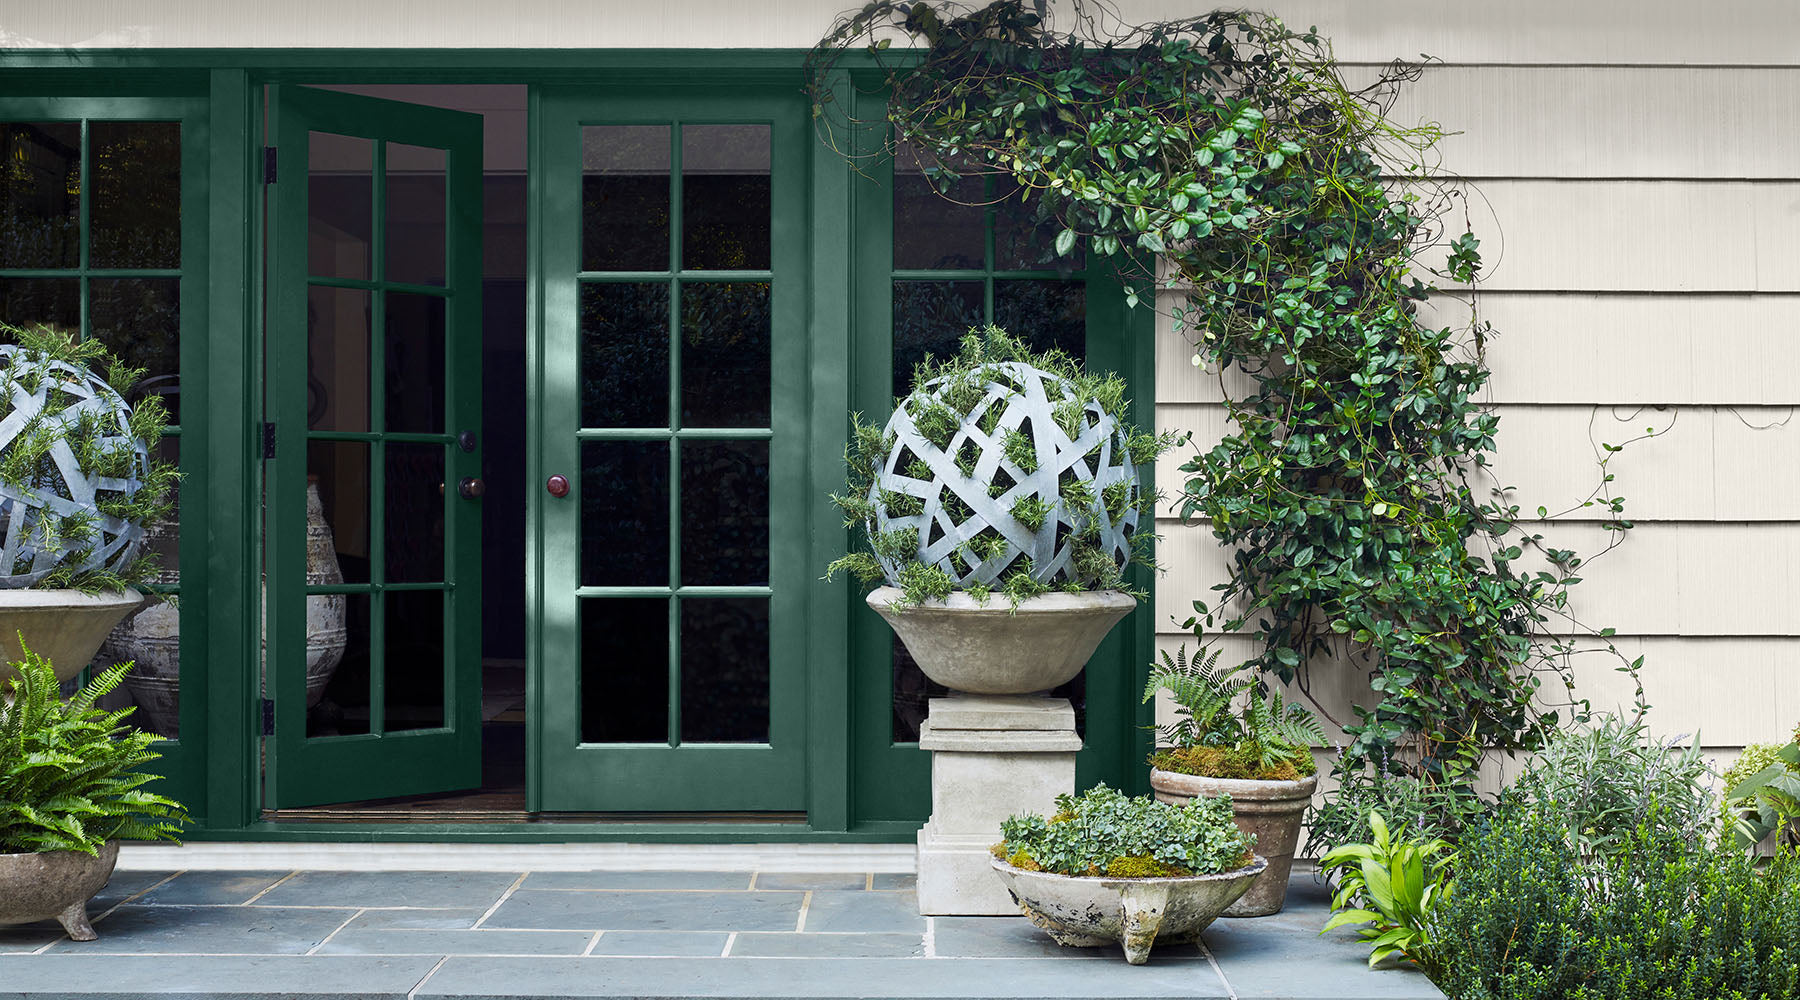 Hunter Green 2041-10 Exterior doors in Benjamin Moore's Aura Grand Entrance Satin Finish